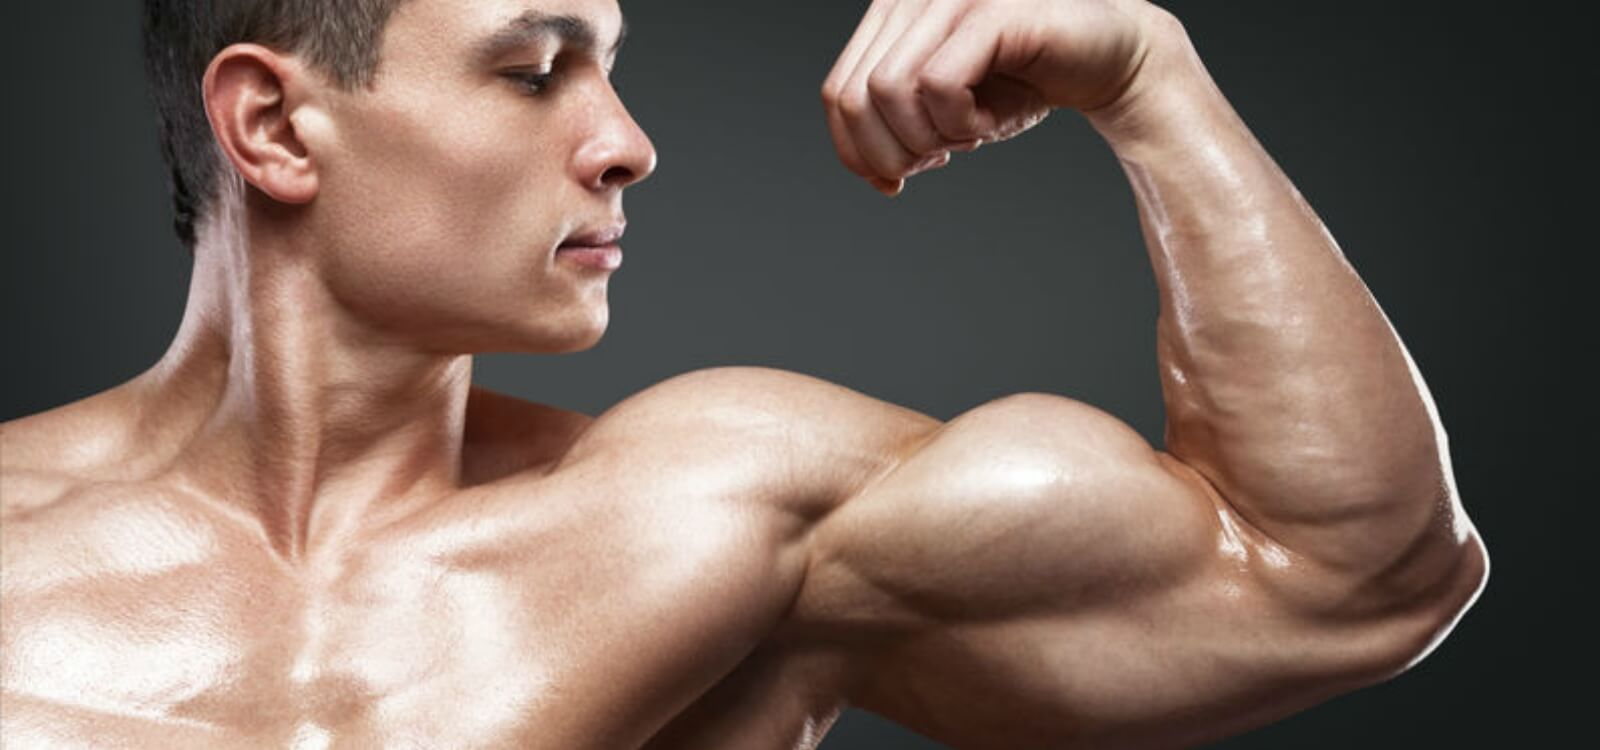 muscle memory and muscle growth